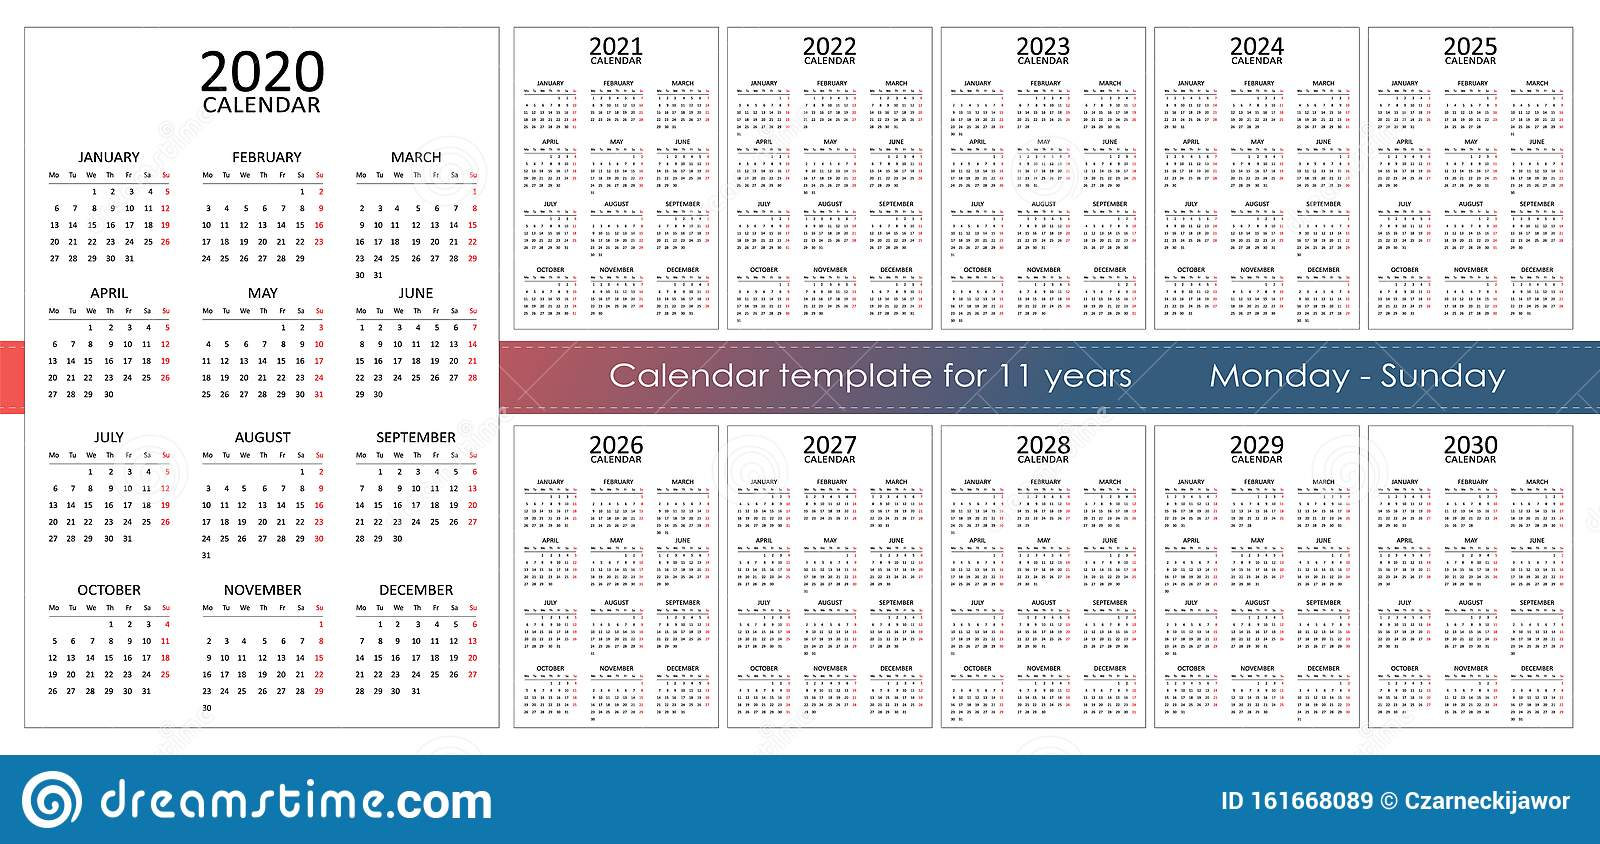 Big Calendar 2022.Calendar Template For 11 Years 12 Months On One Page Stock Vector Illustration Of Desk Graphic 161668089